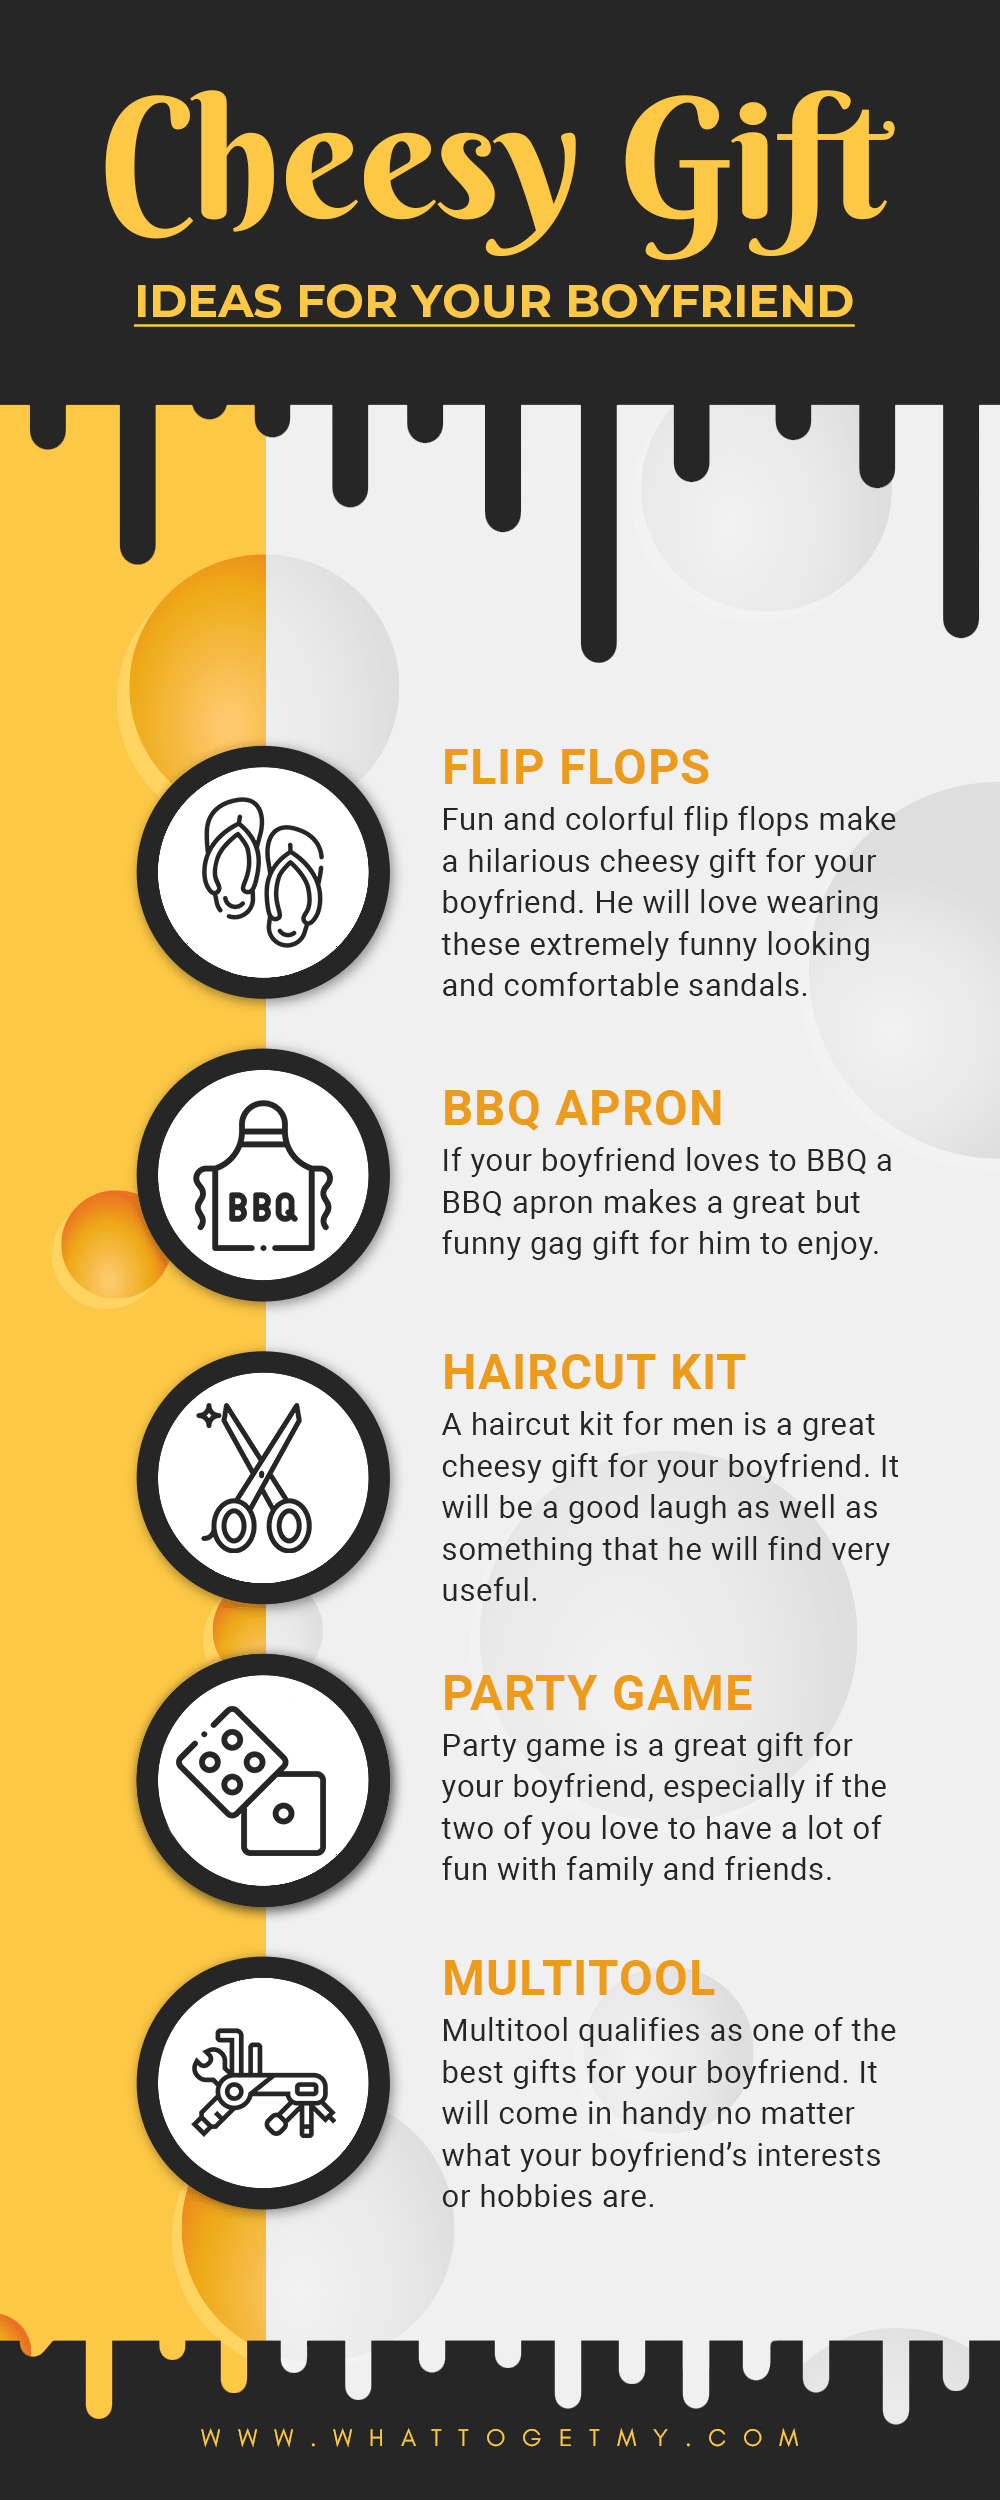 Infographic Cheesy gift Ideas for your boyfriend-min